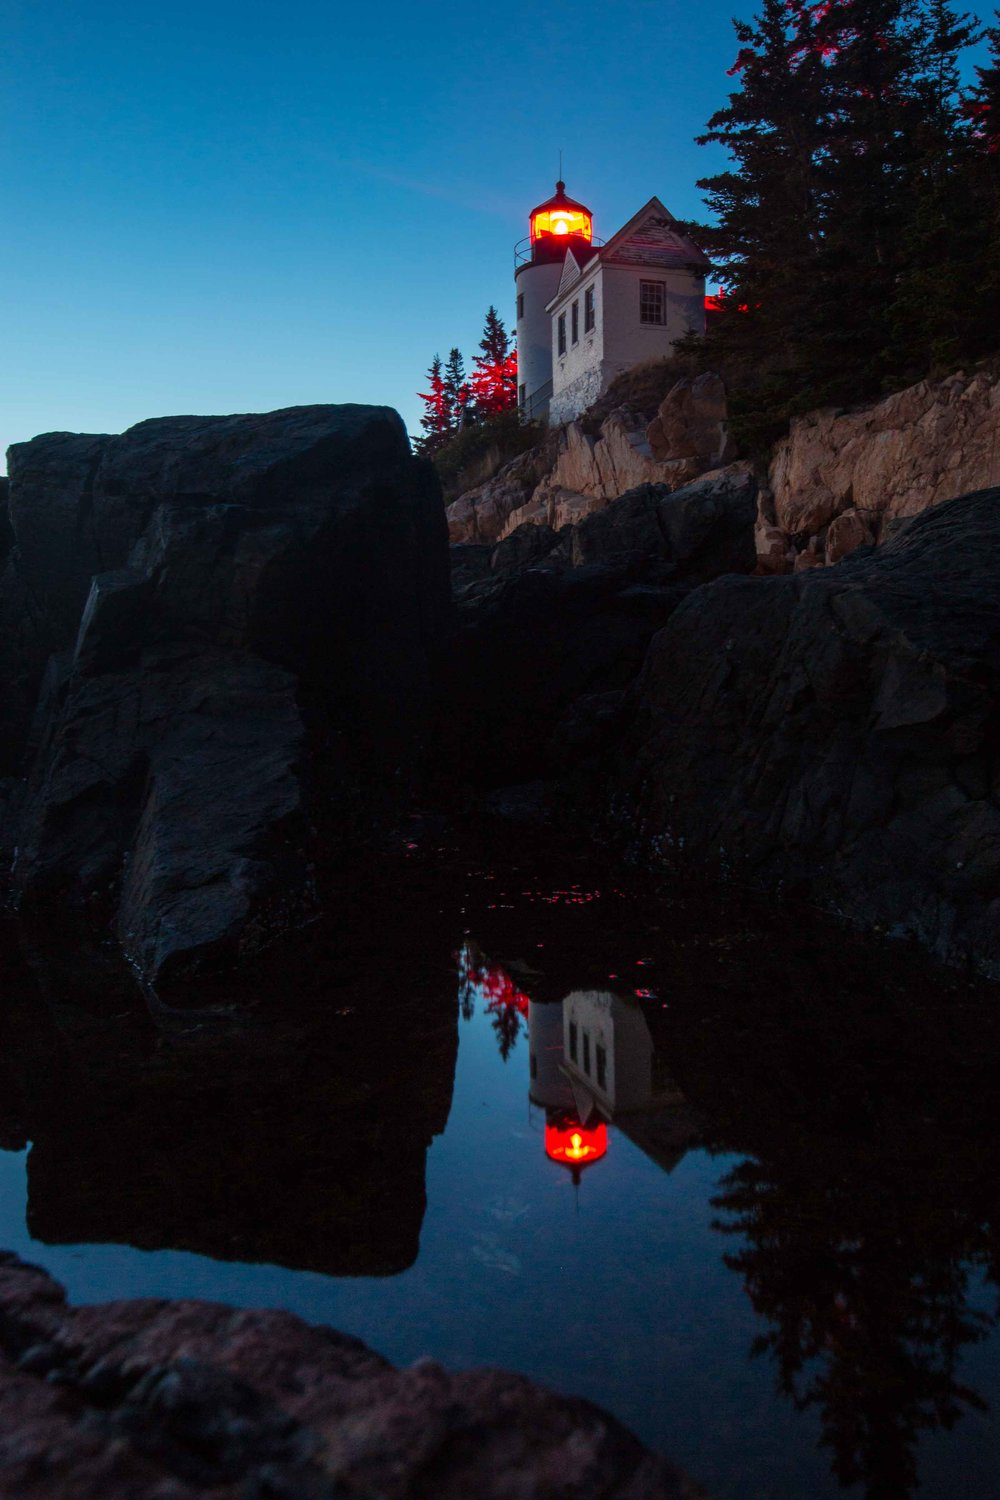 Bass Harbor Reflection ISO 1000 / 27mm / f11 / 30 sec